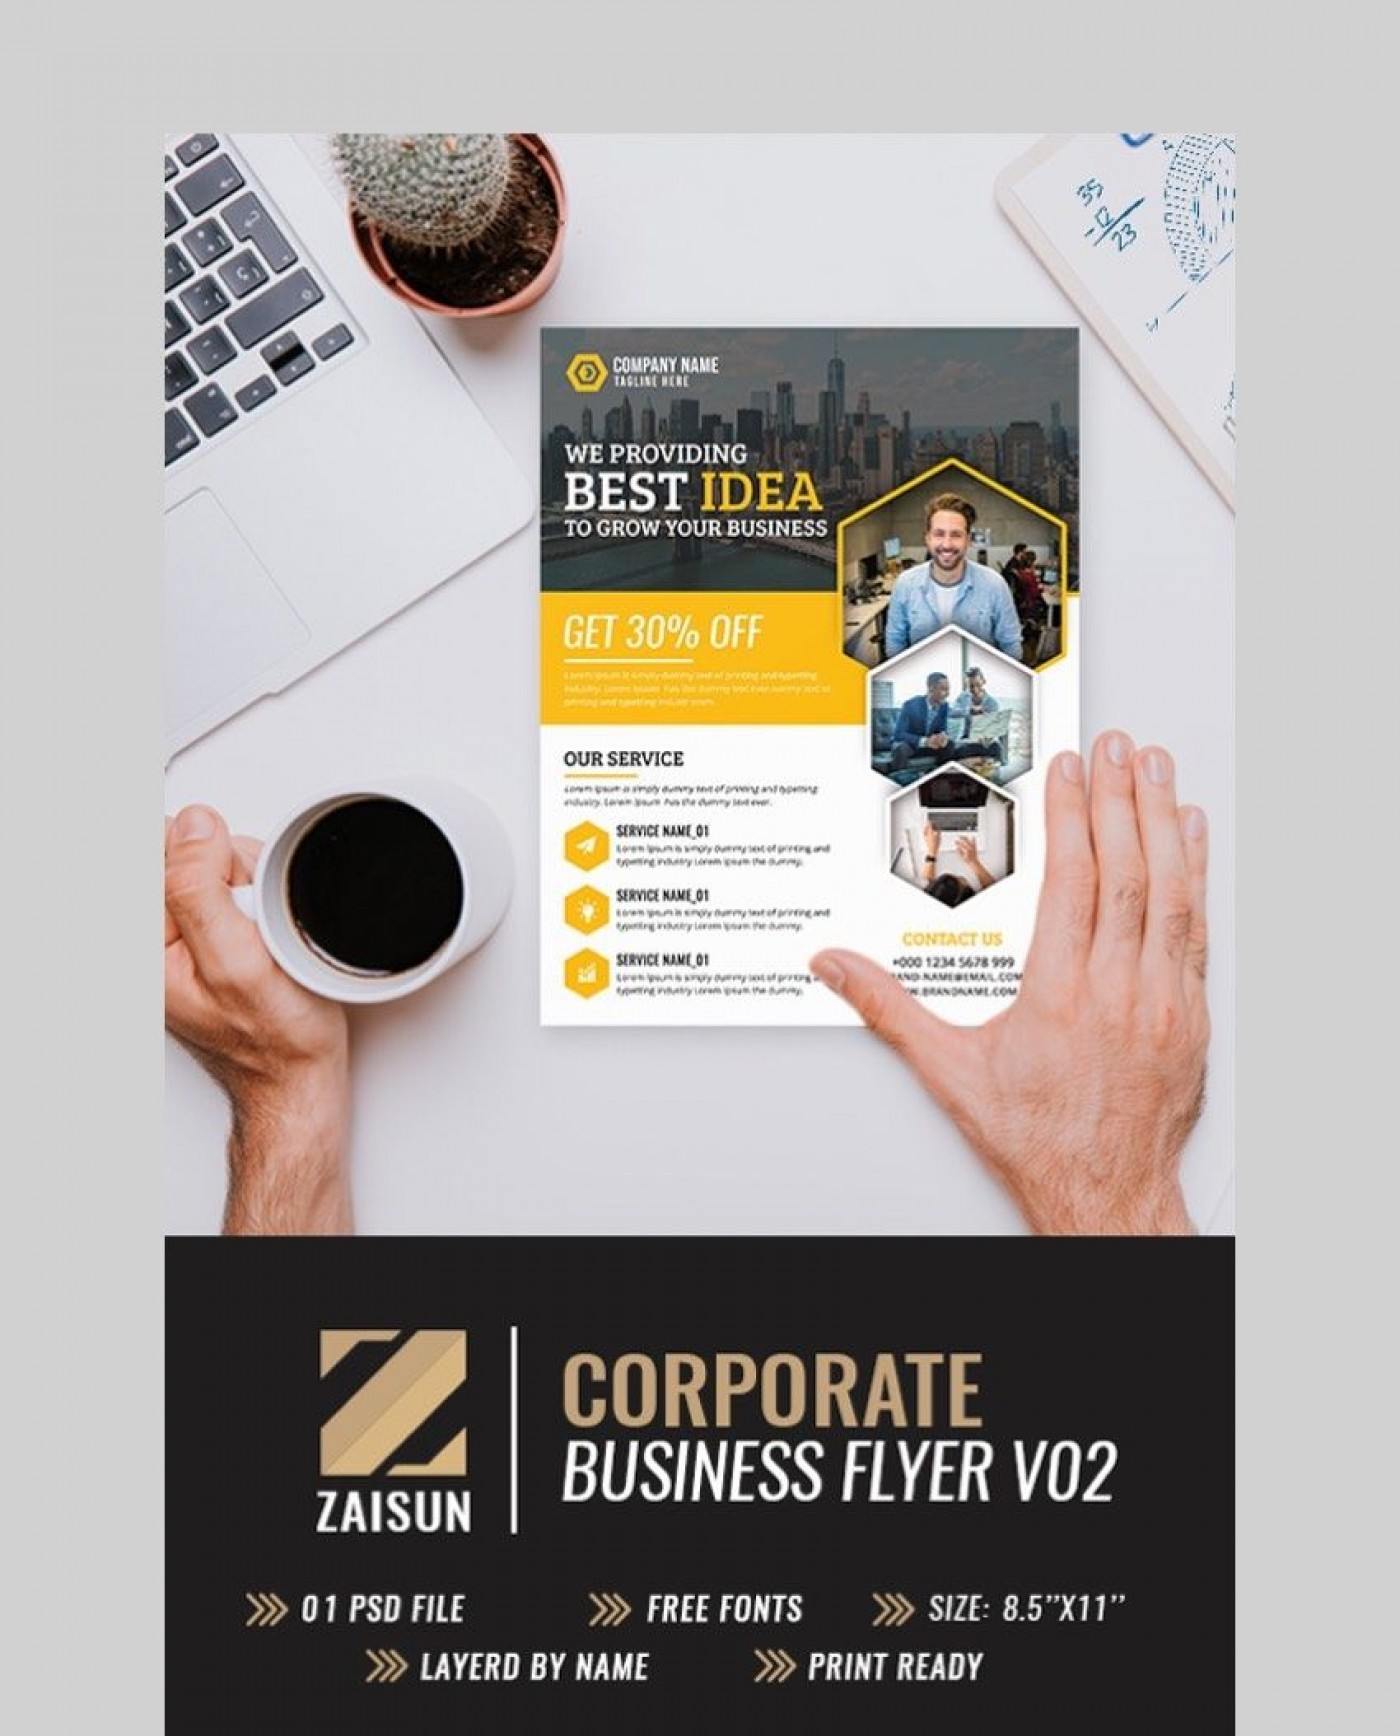 006 Unusual Busines Flyer Template Free Download High Def  Photoshop Training Design1400